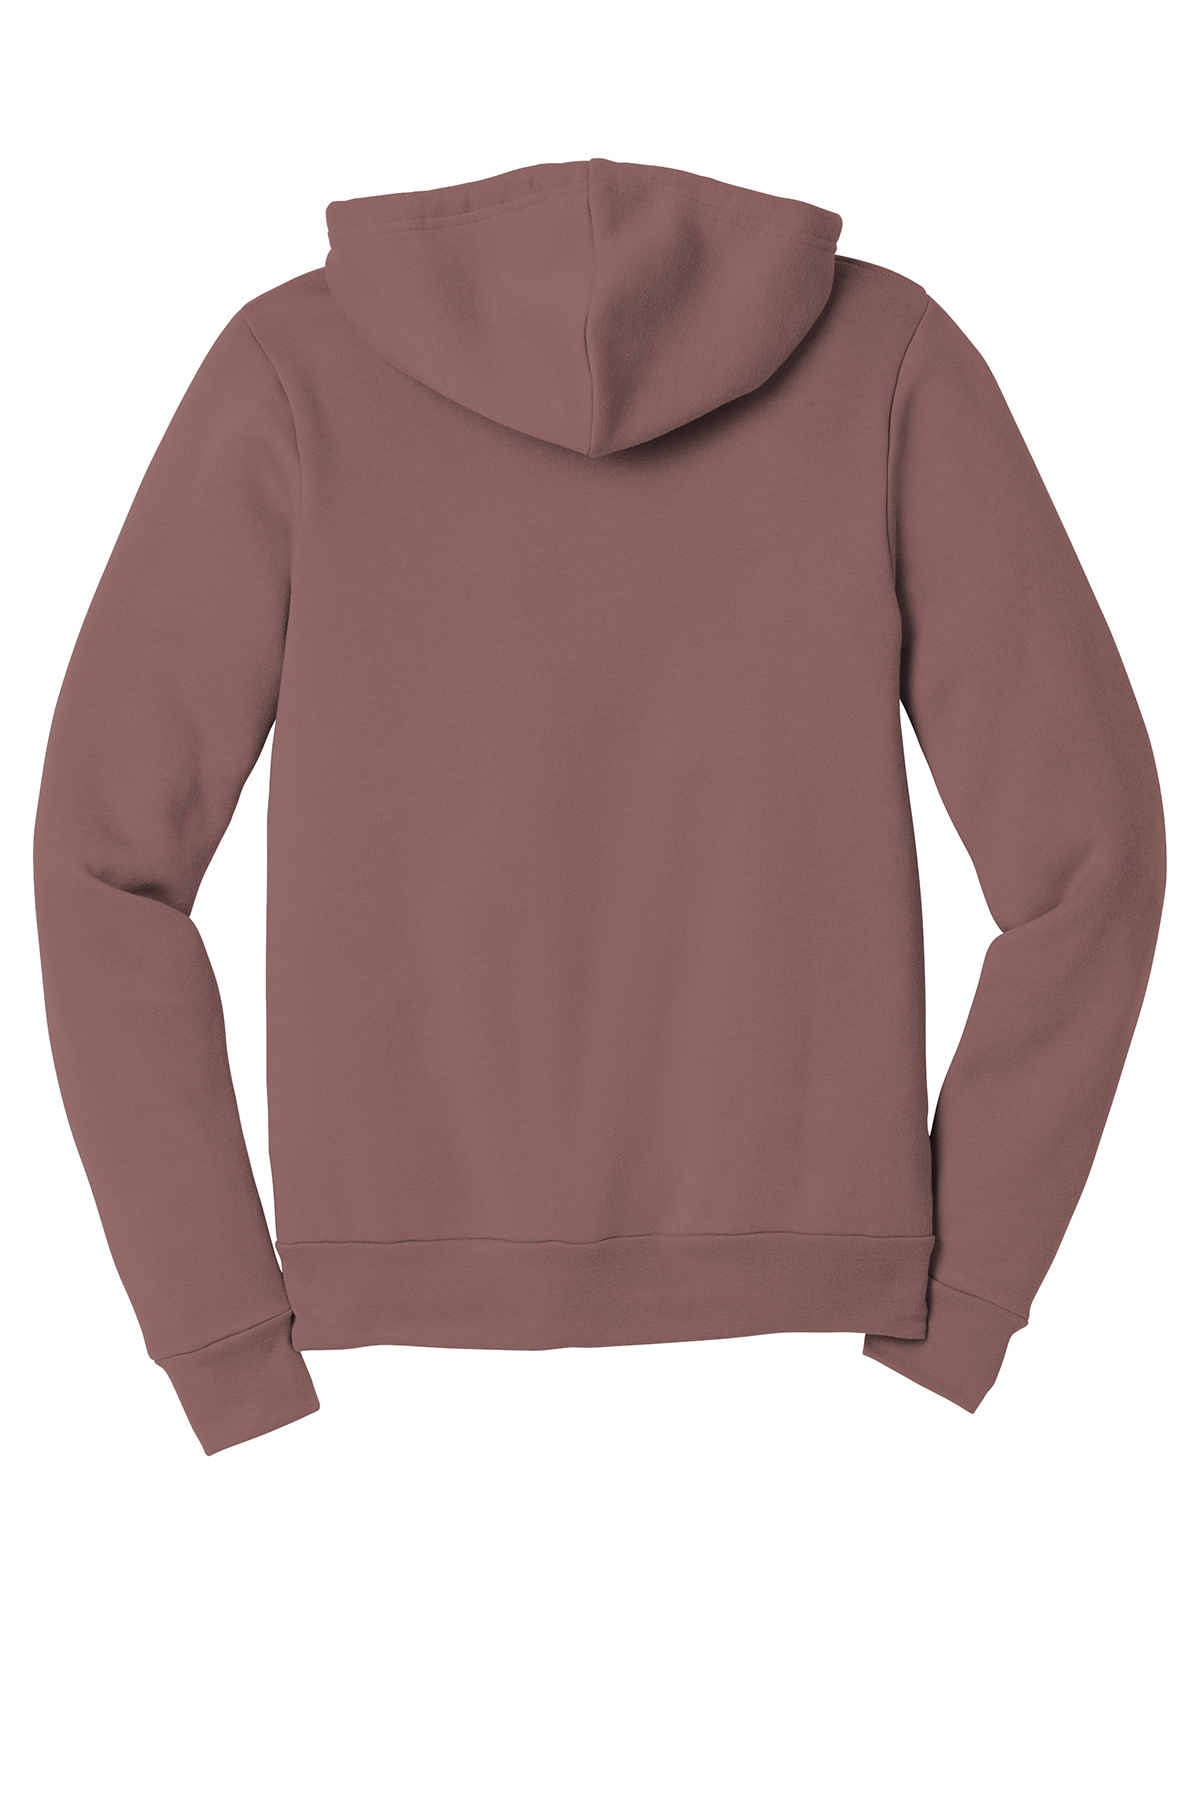 81ac984aa BELLA+CANVAS ® Unisex Sponge Fleece Full-Zip Hoodie | Sweatshirts ...